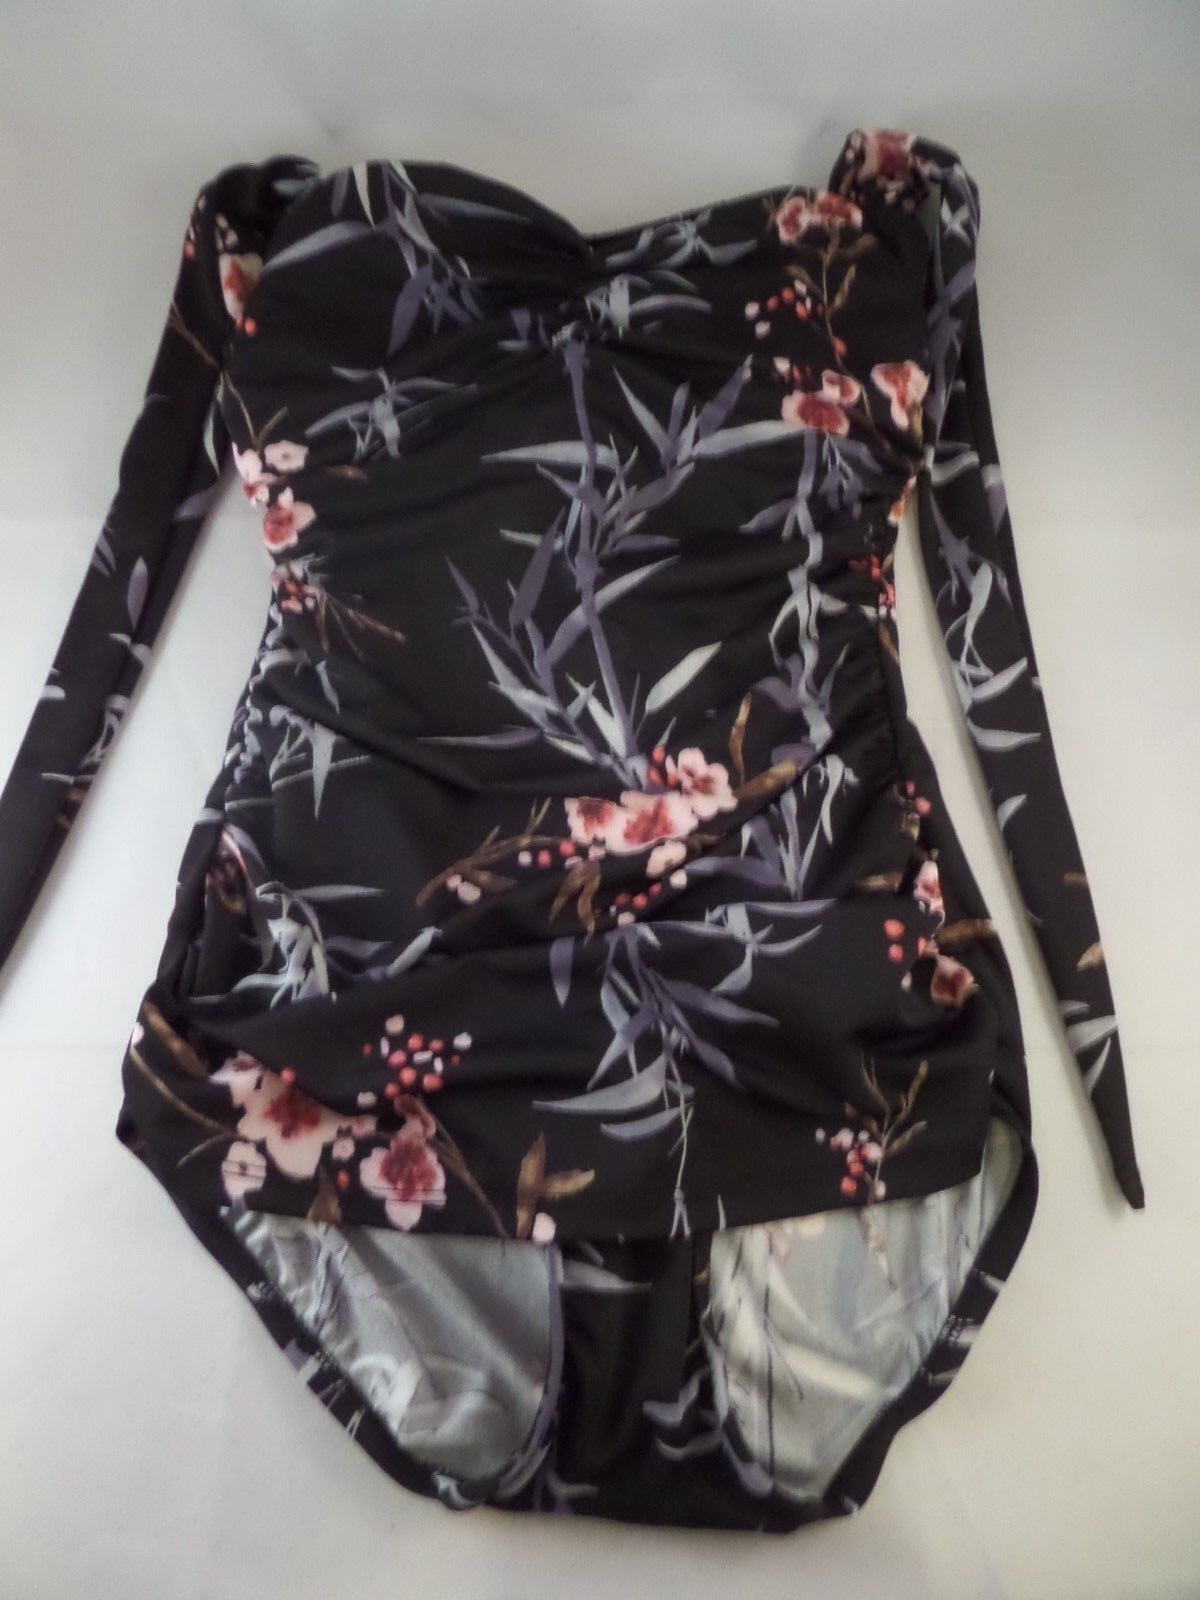 NWT Esther Williams Bathing Beauty 1pc Swimsuit sz 4 Cherry Blossom Print Pin Up